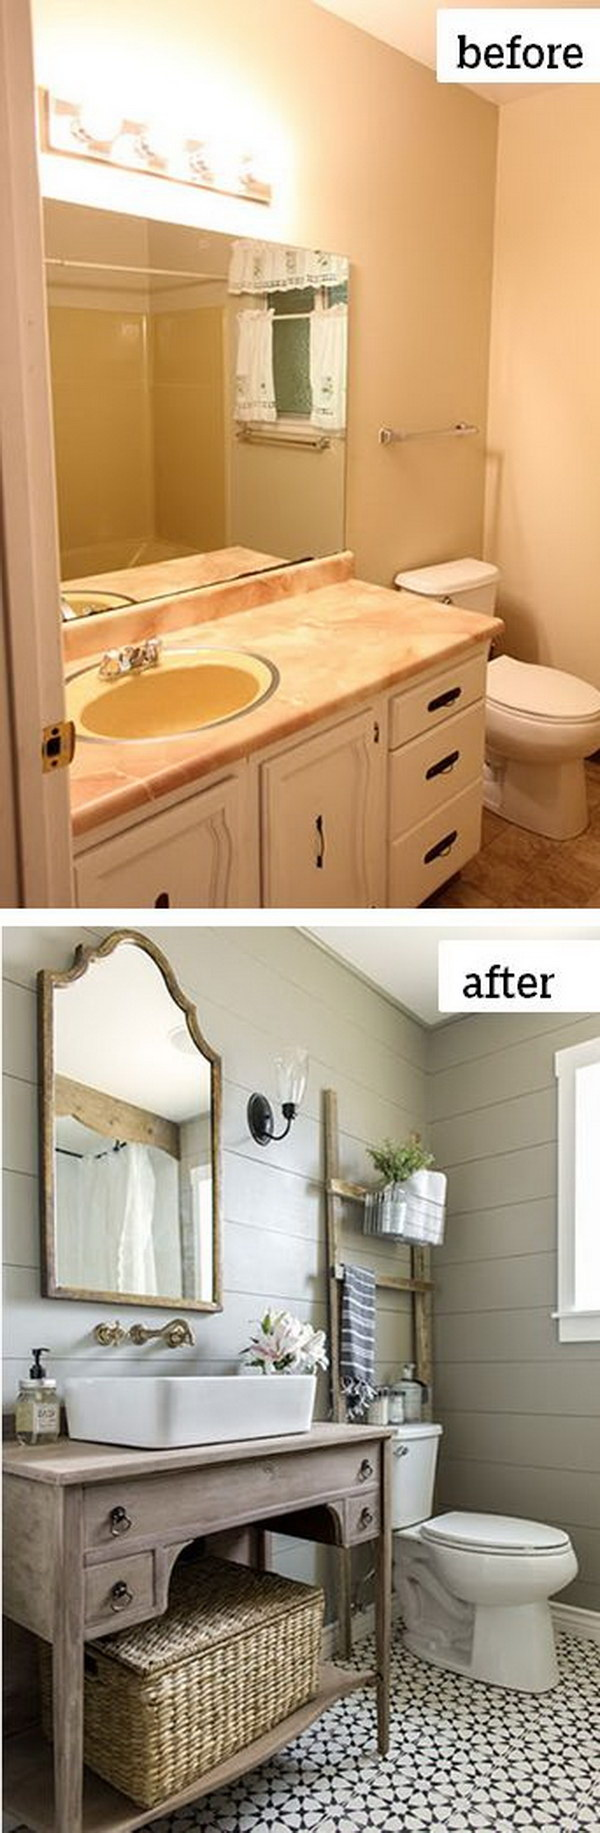 Before and after makeovers 20 most beautiful bathroom Small cottage renovation ideas